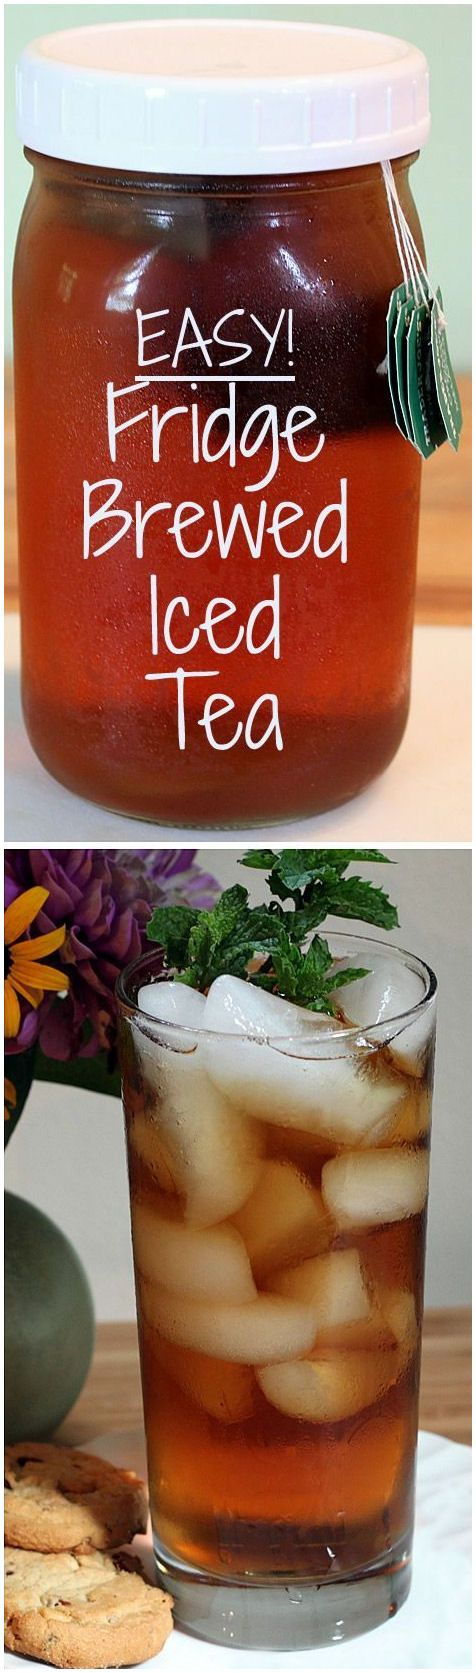 DIY Refrigerator Iced Tea // no boiling, easy & healthy #energy